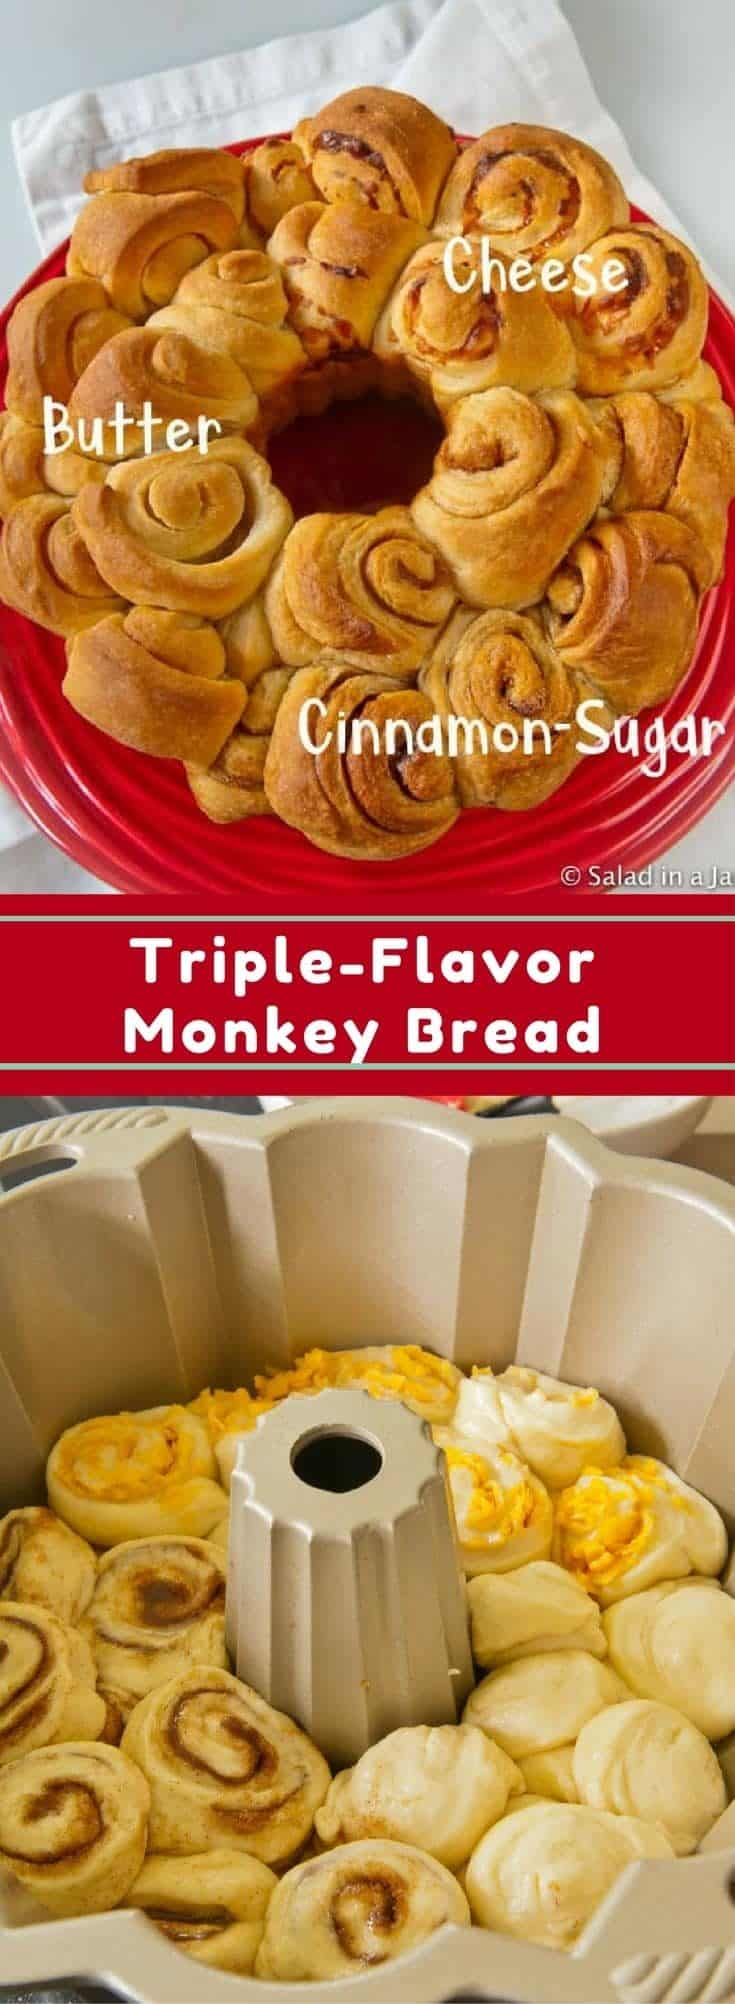 Triple-Flavor Monkey Bread (yeast) with 3 different flavors: butter, cheese, cinnamon-sugar; mixed and kneaded in a bread machine